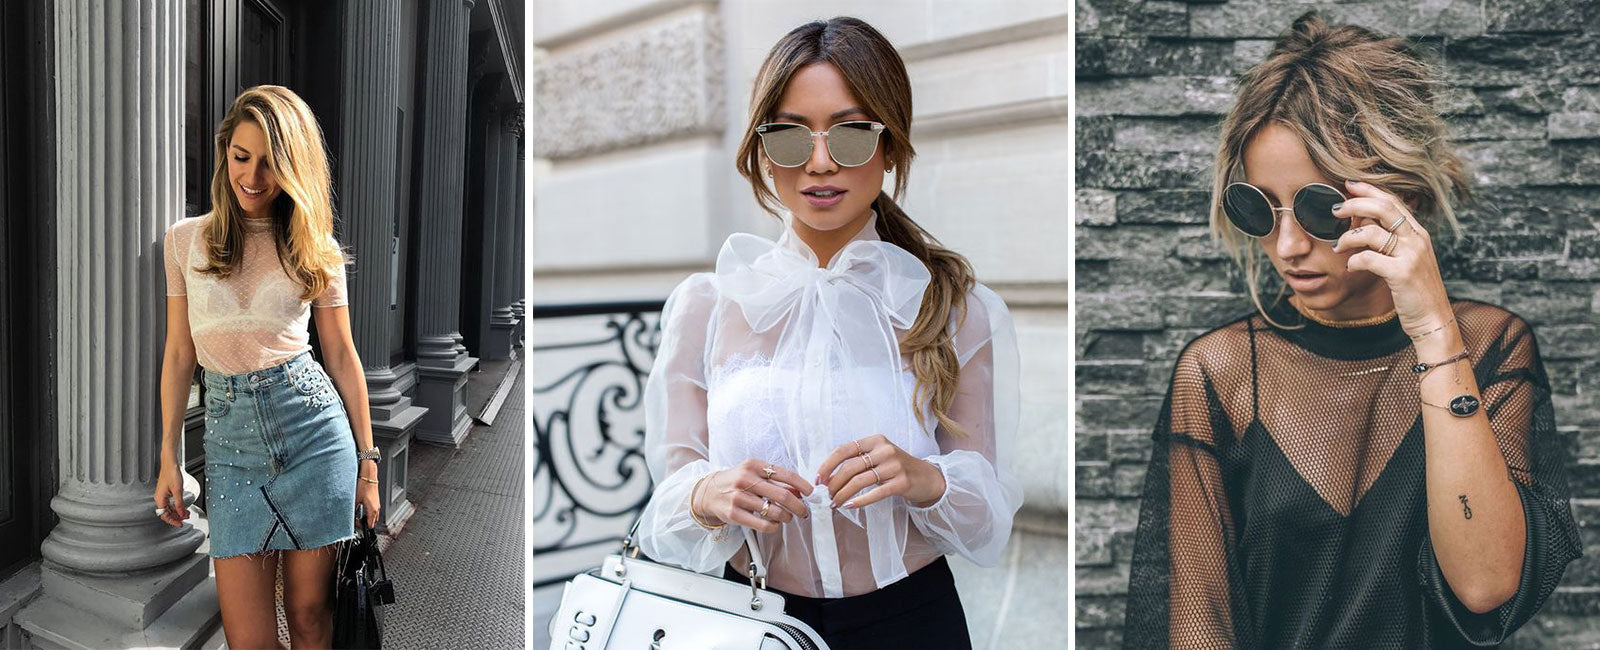 5 top trends 2020 fashion show - Sheer Blouse